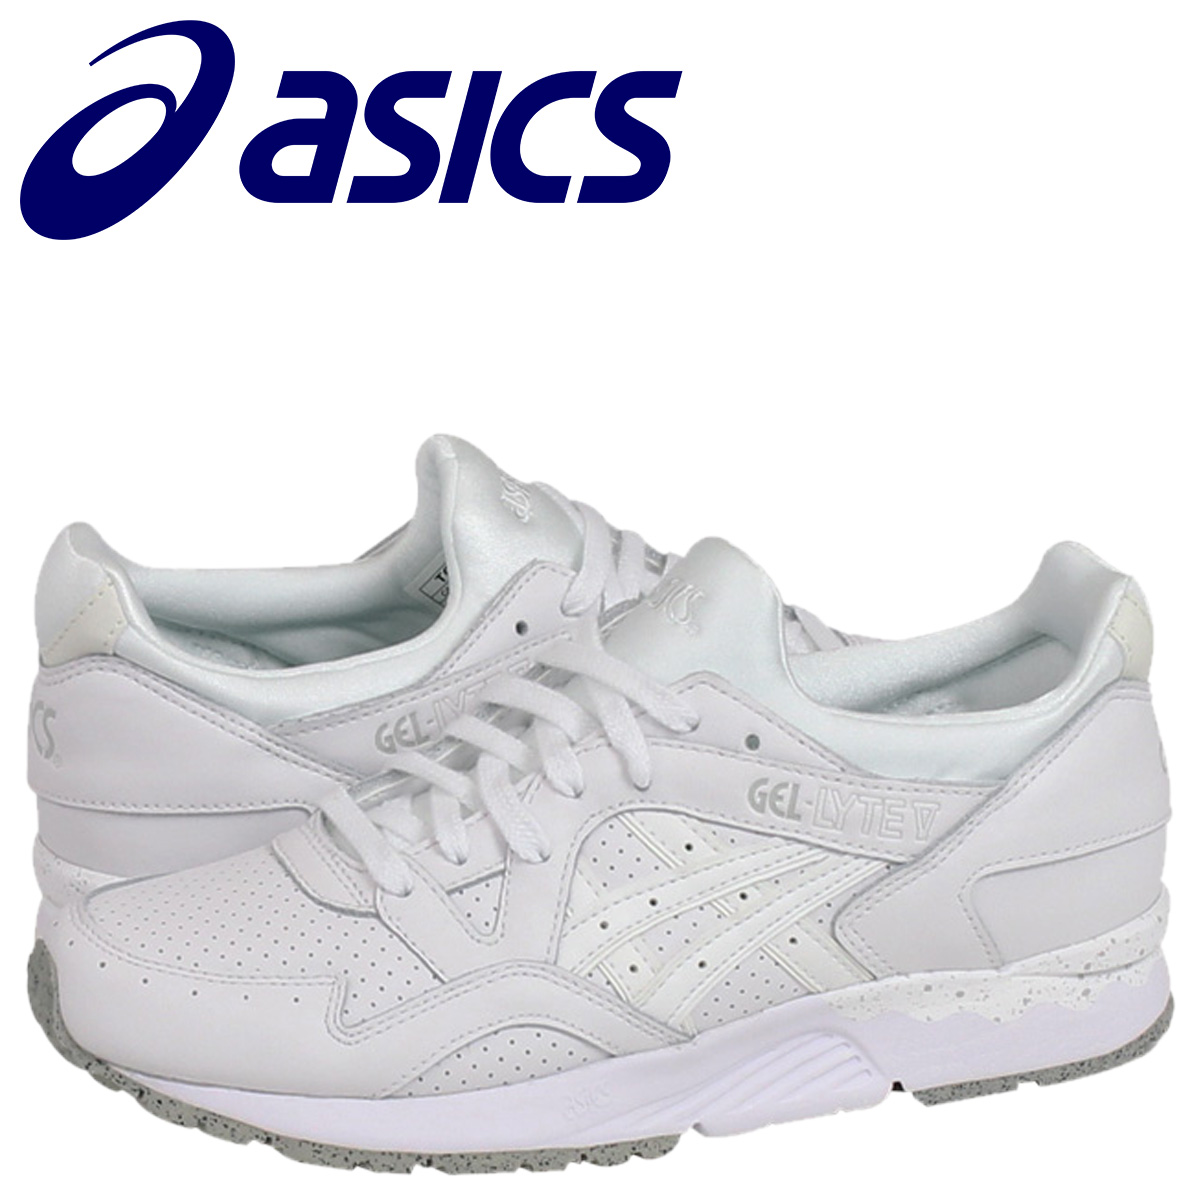 ee0e9b359845 ASICS asics mens Womens GEL-LYTE 5 sneakers differeces TQ5X 4L-0101 white   7 23 new in stock